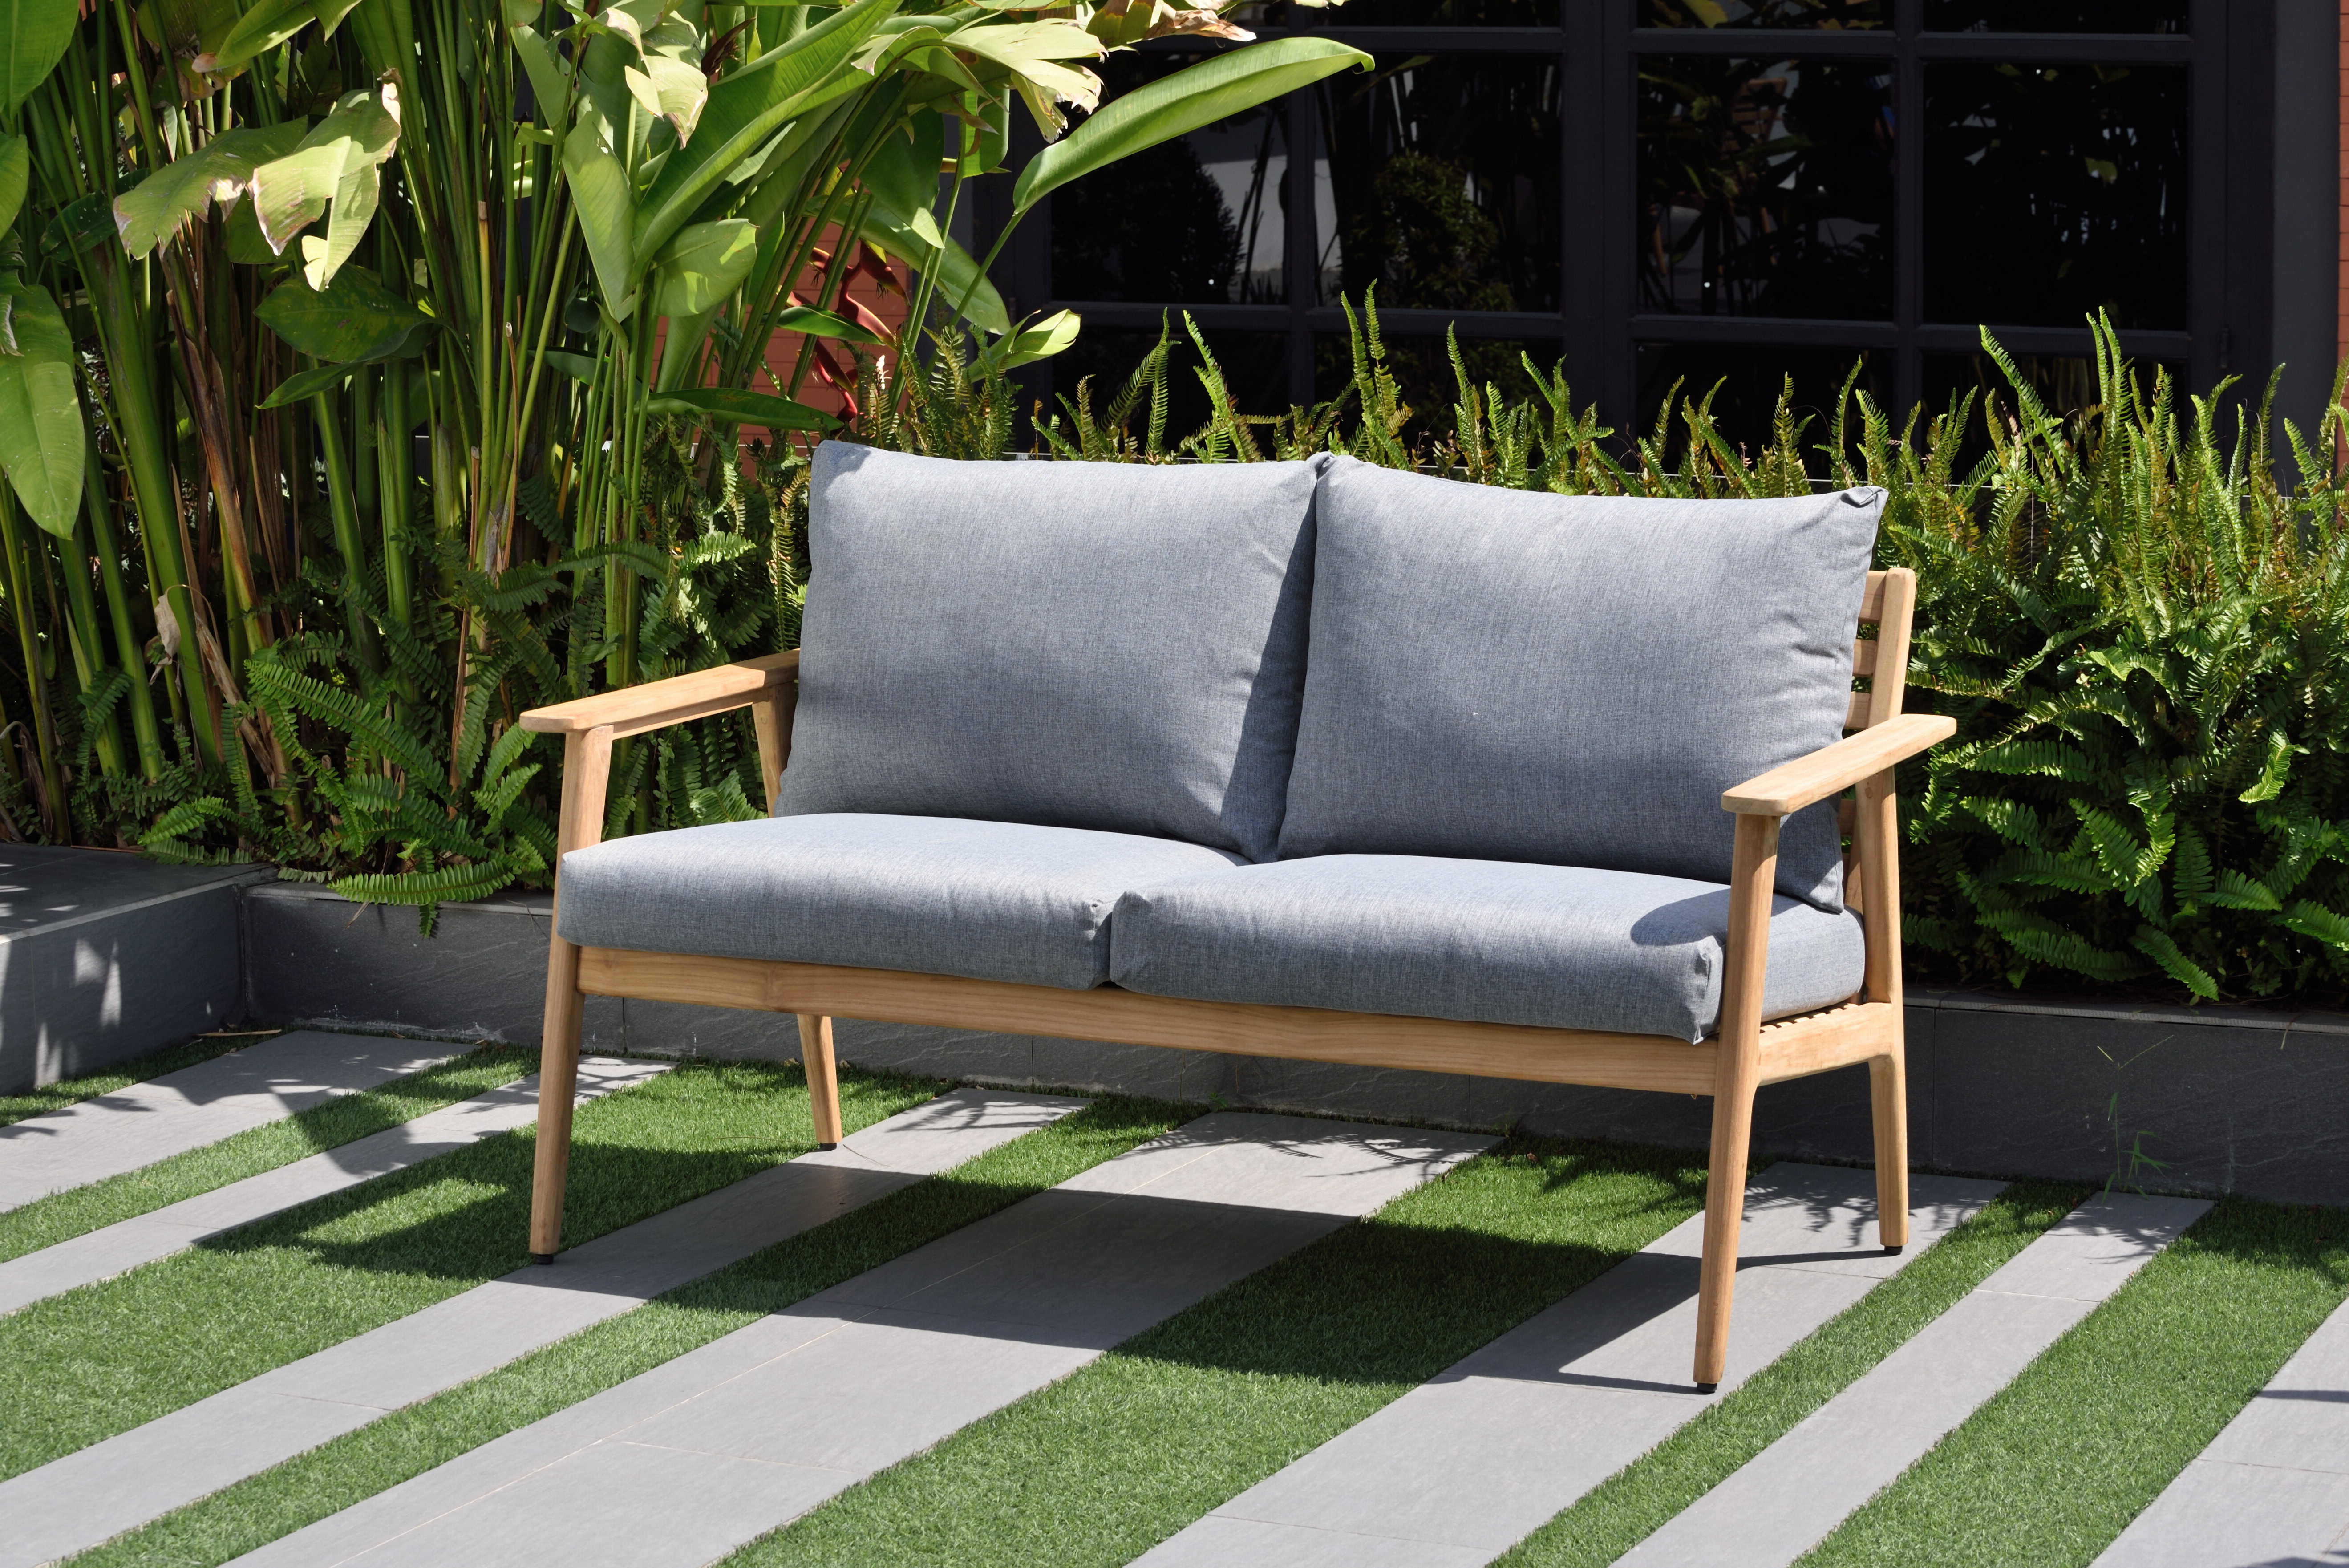 Popular Lakeland Teak Patio Sofas With Cushions Throughout Darrah Deep Seating Teak Patio Sofa With Cushions (View 17 of 20)